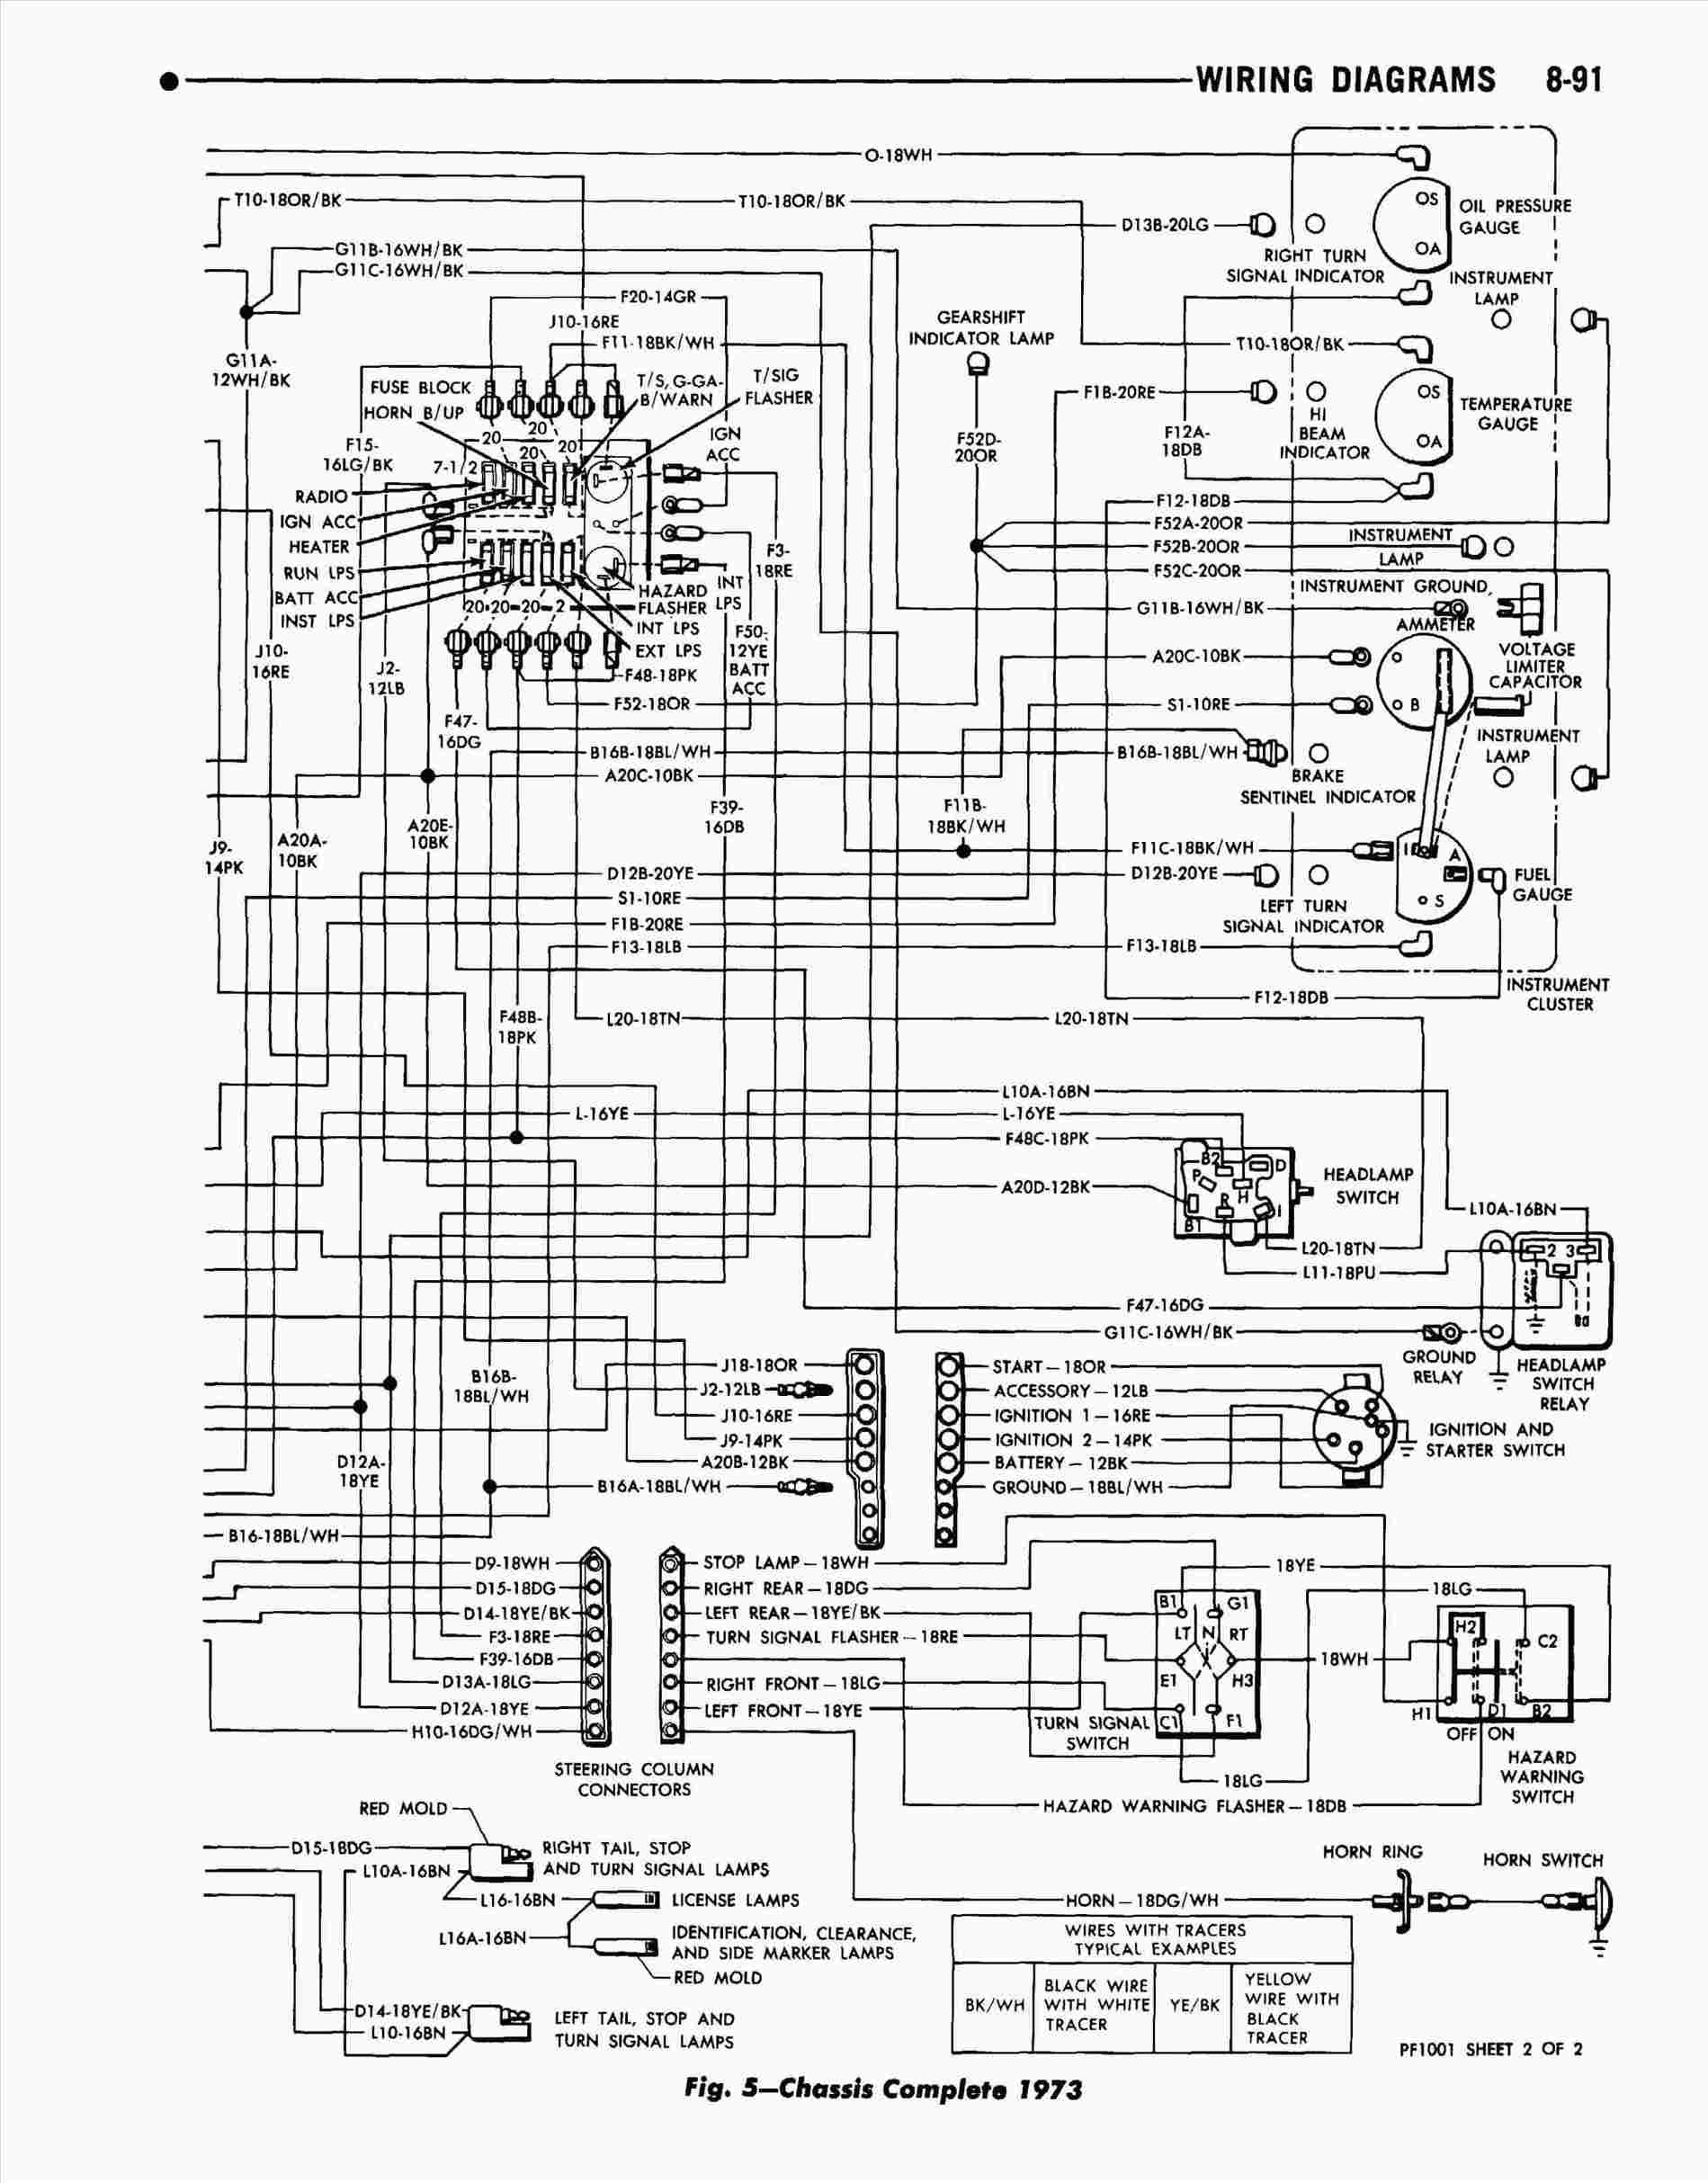 1999 Fleetwood Prowler Wiring Diagram | Wiring Diagram - 99 Wilderness Travel Trailer Furnace Wiring Diagram